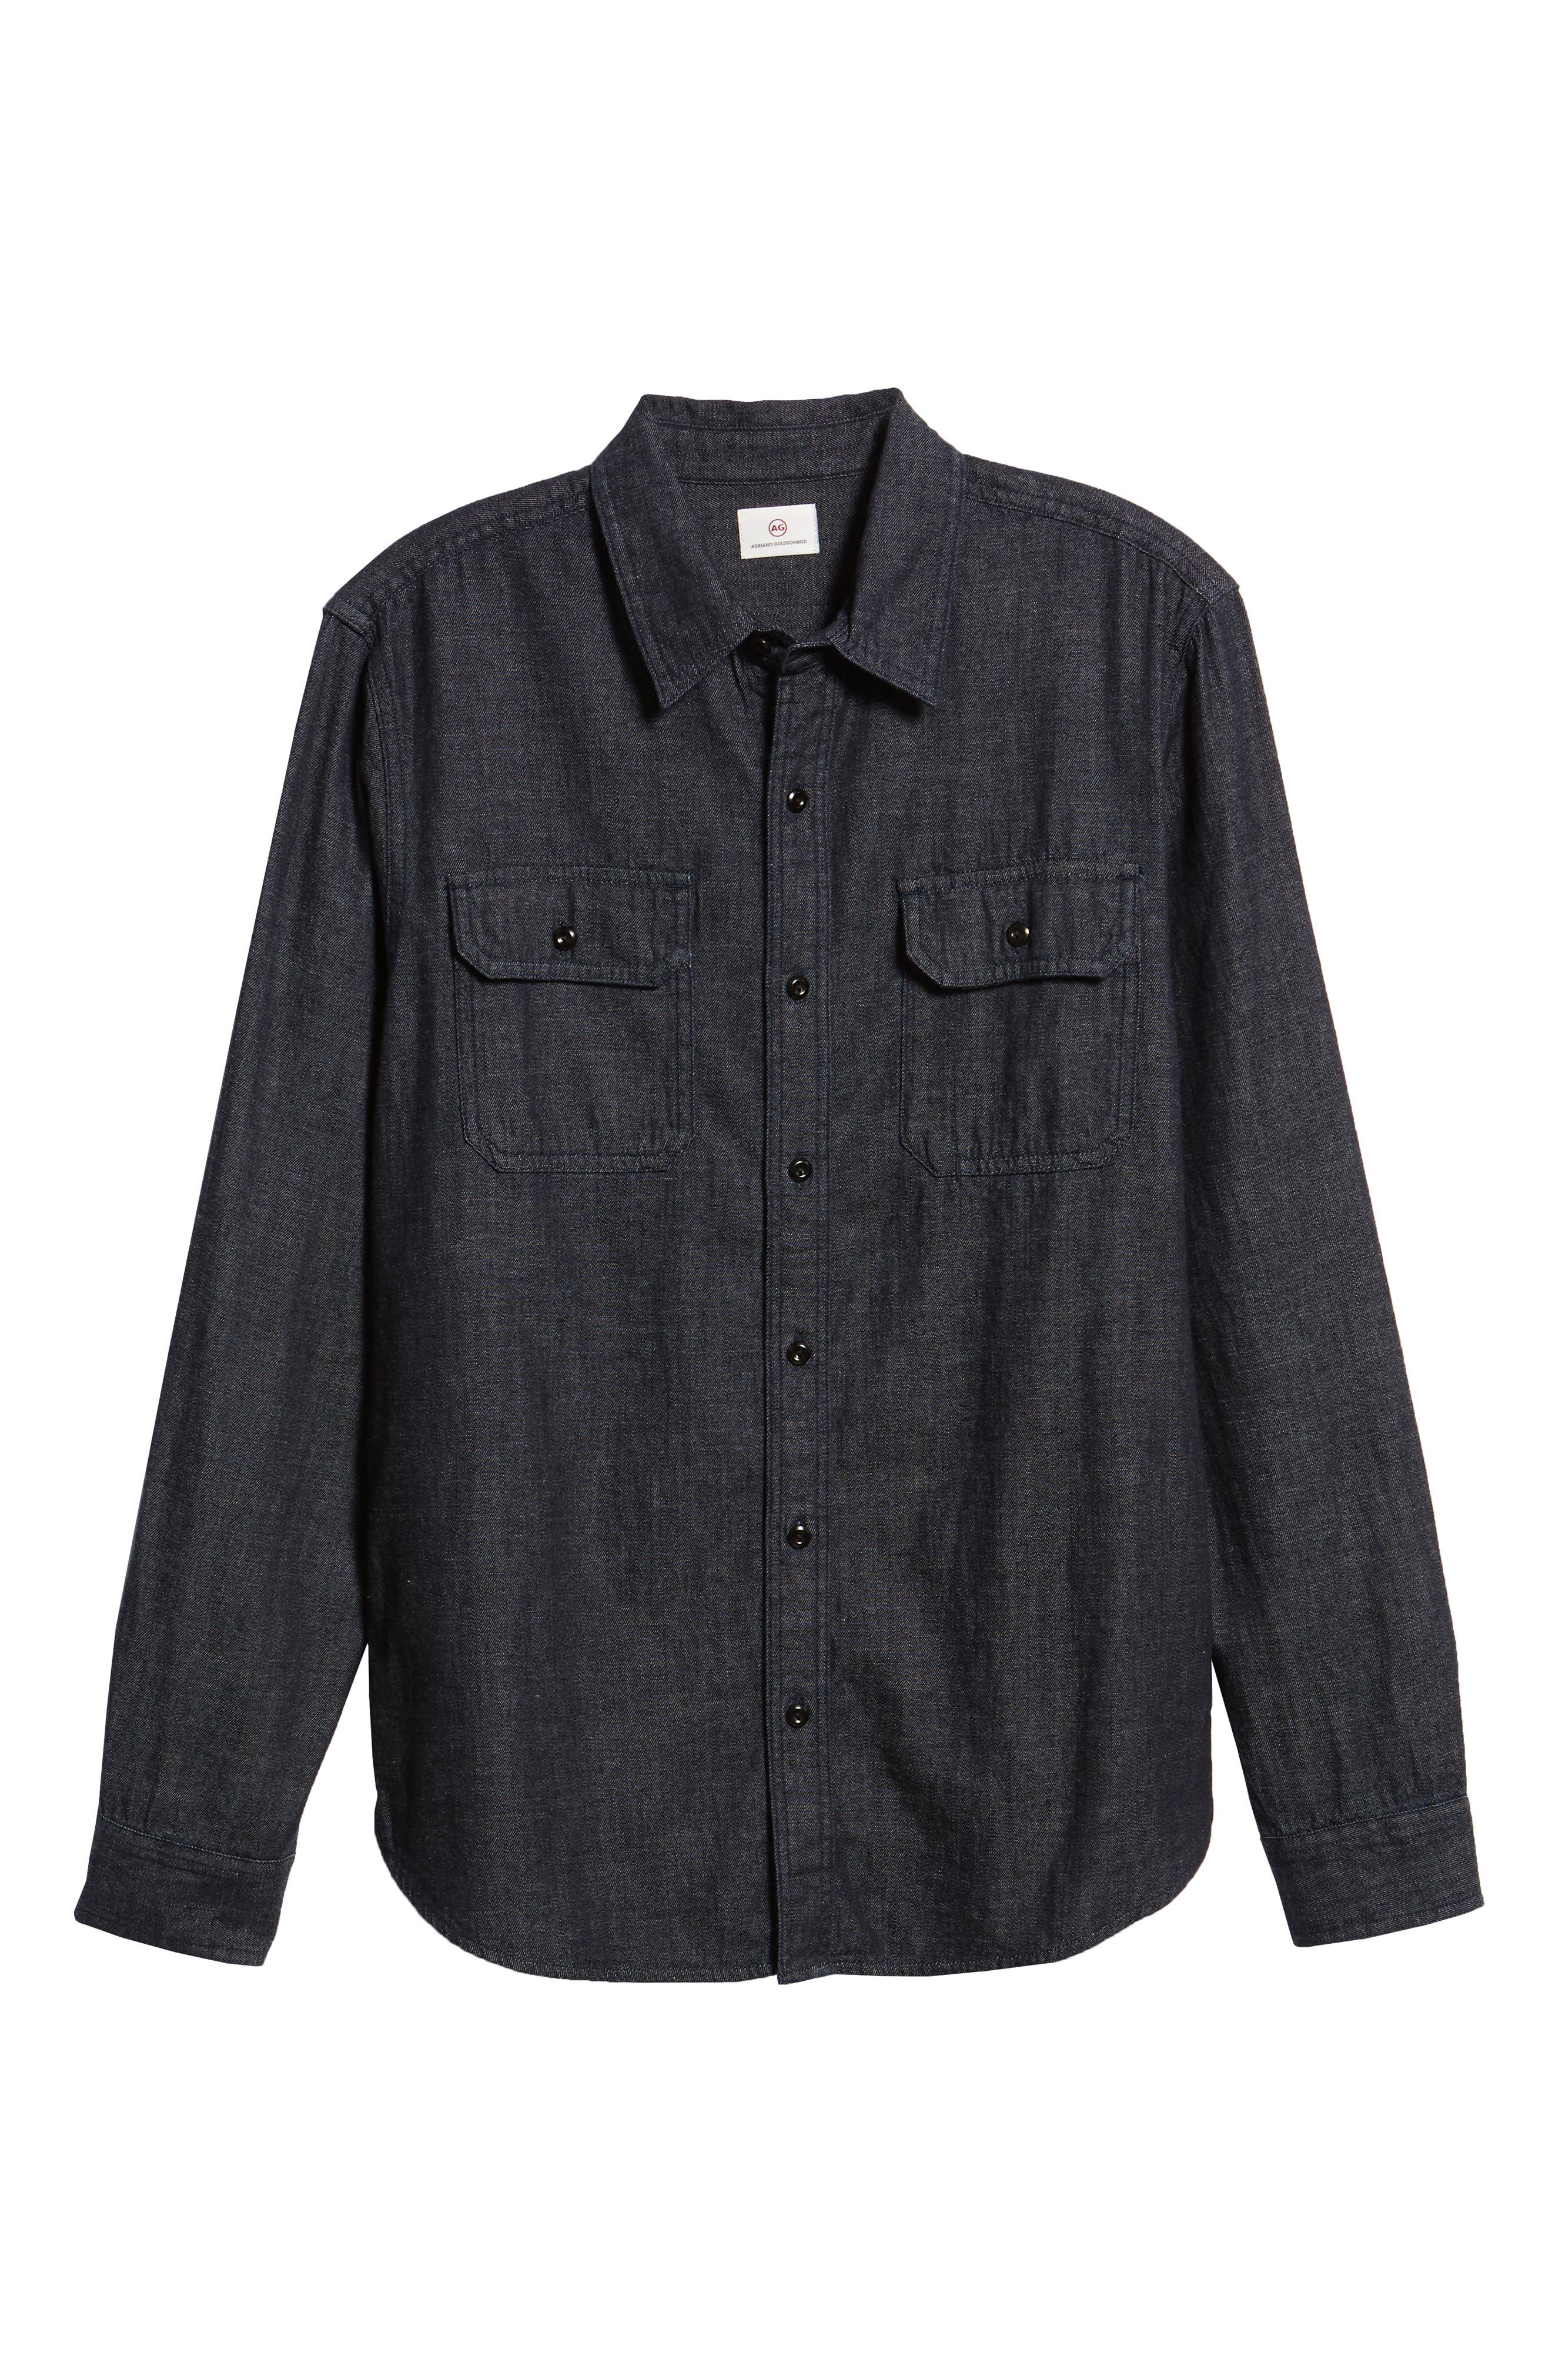 Benning Chambray Slim Fit Utility Shirt,                             Alternate thumbnail 5, color,                             020